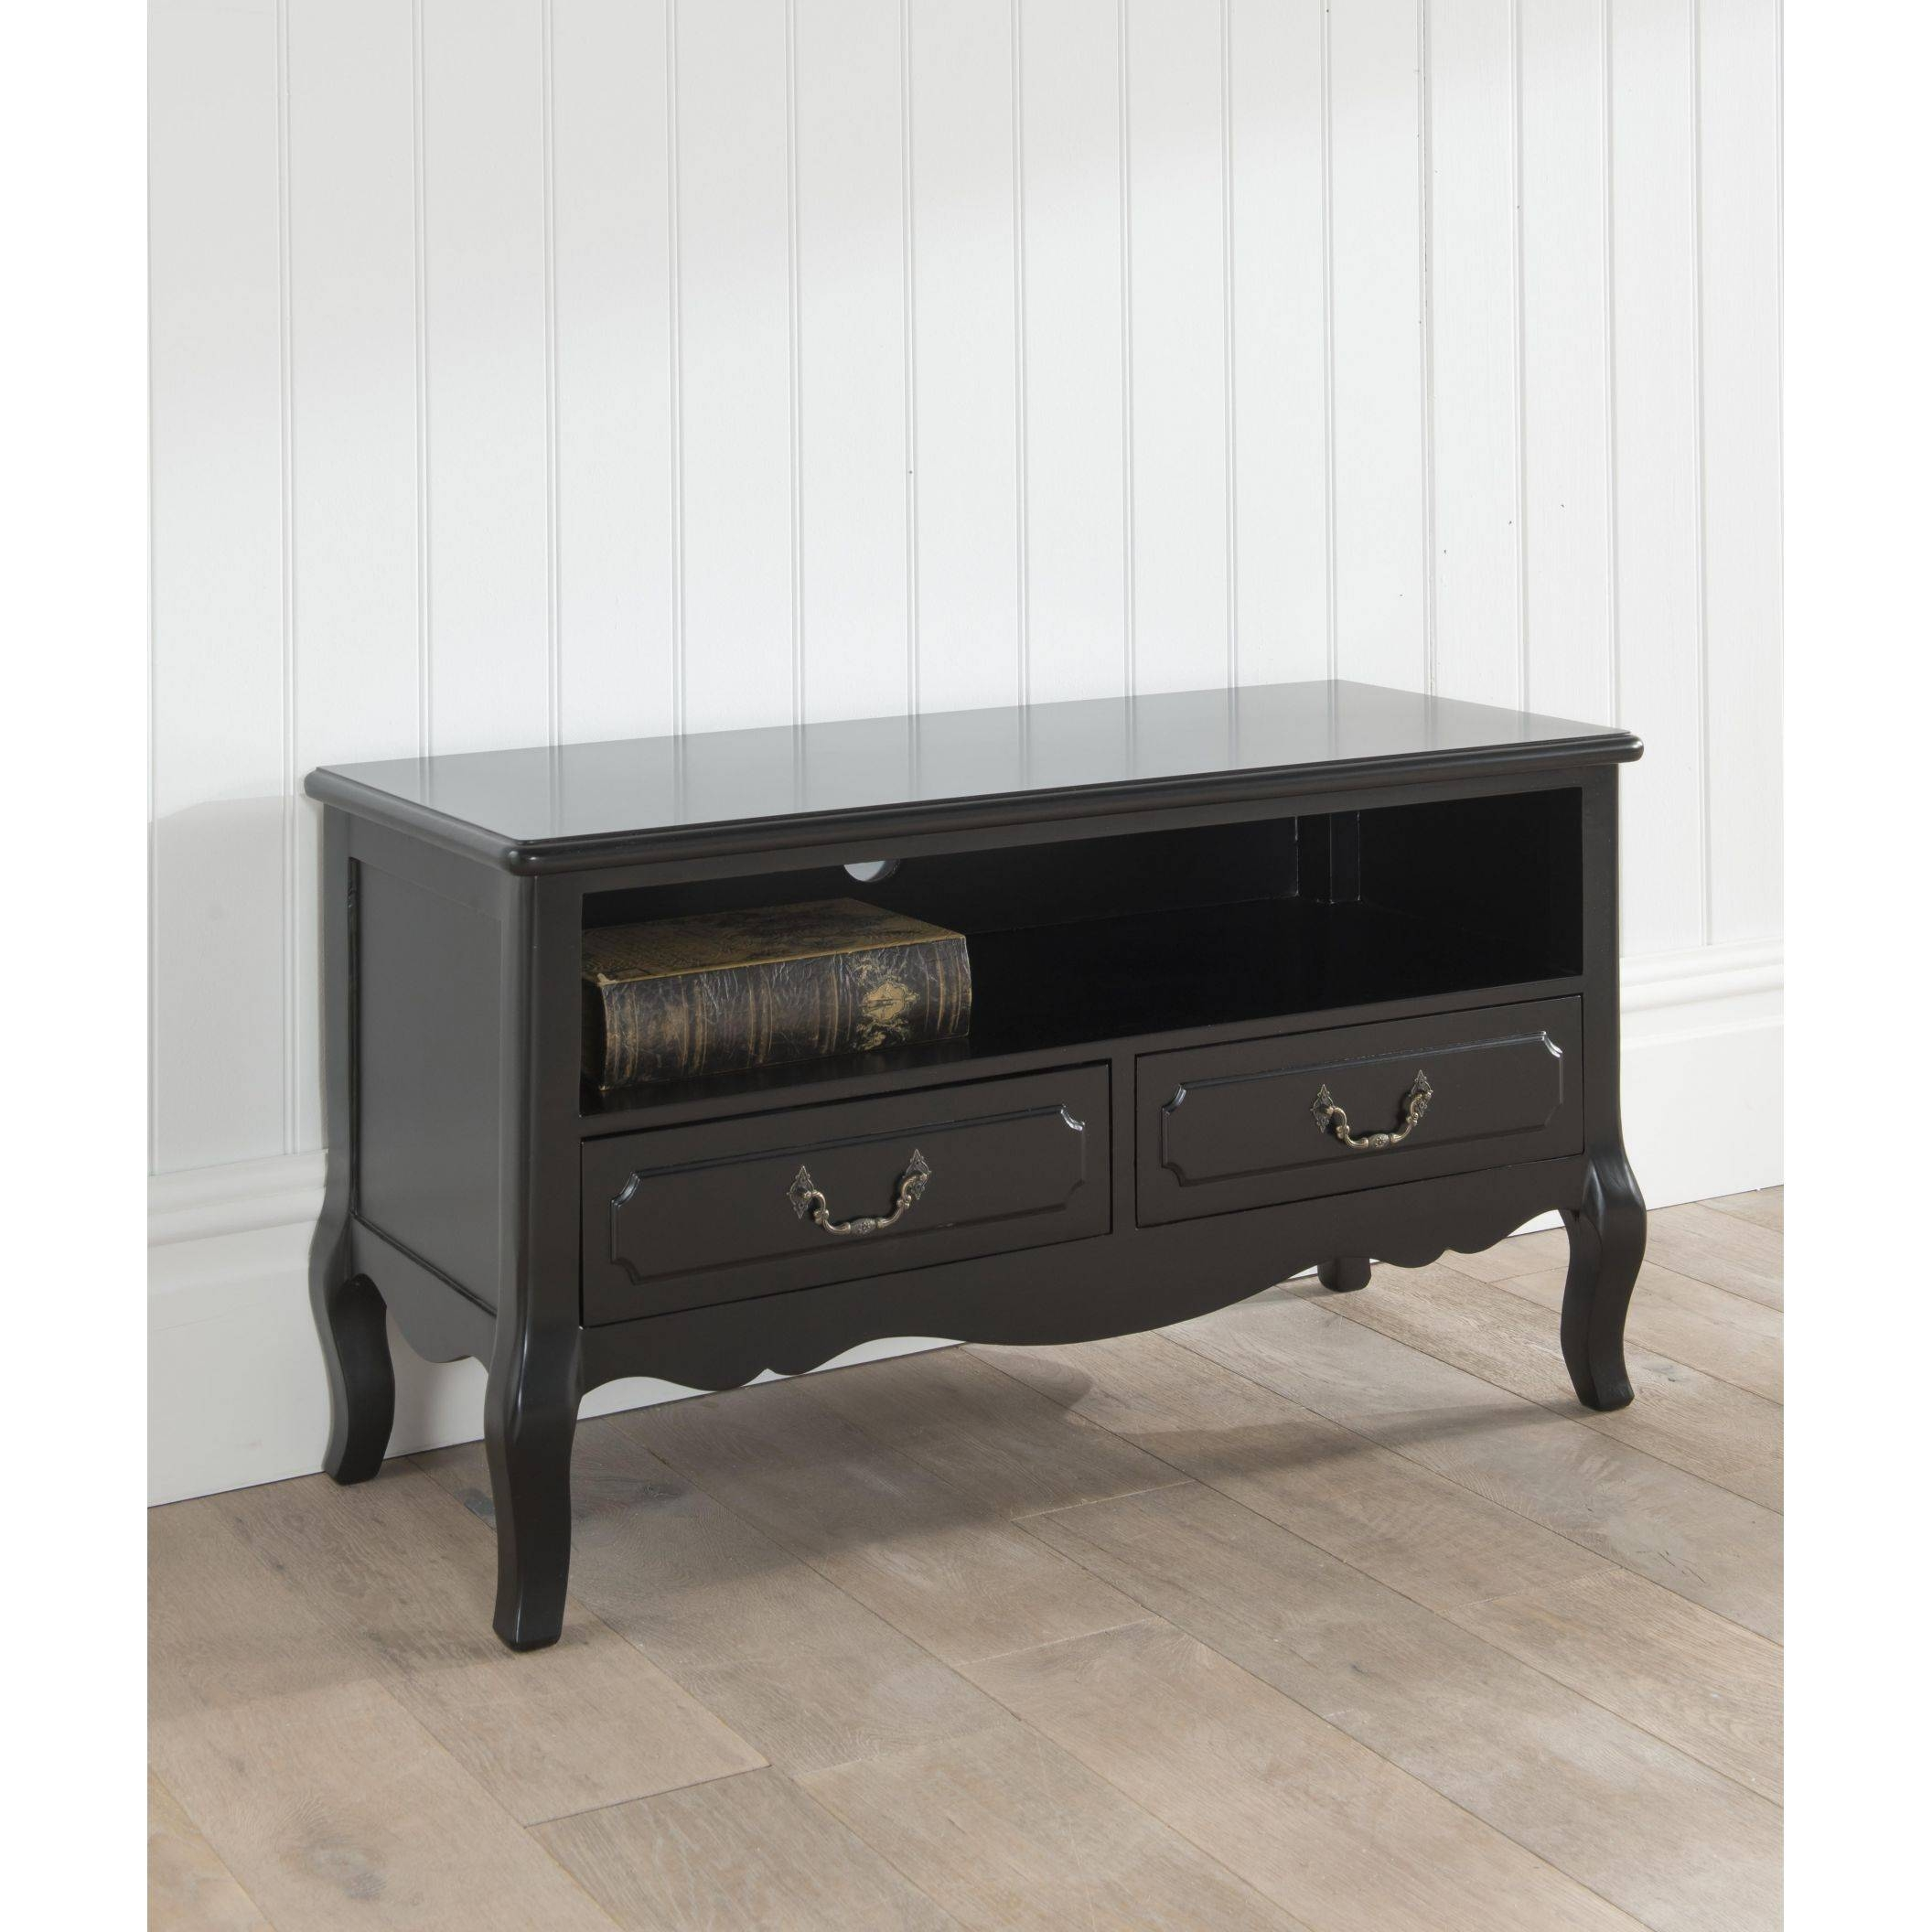 Antique French Tv Stand | Black French Style Furniture regarding French Tv Cabinets (Image 4 of 15)